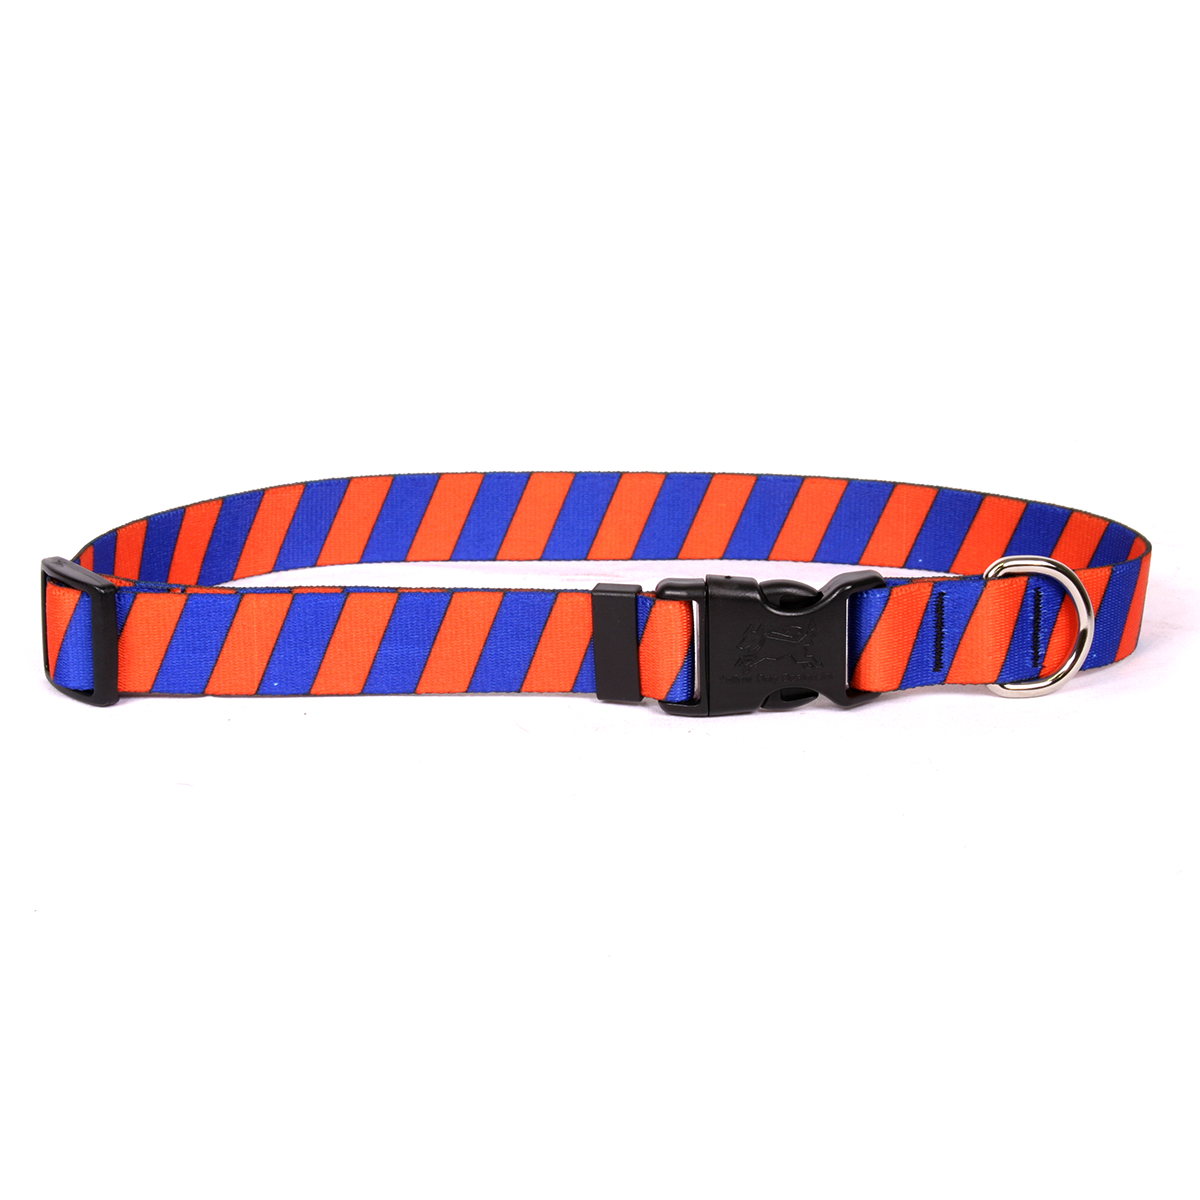 Team Spirit Orange and Blue Standard Collar